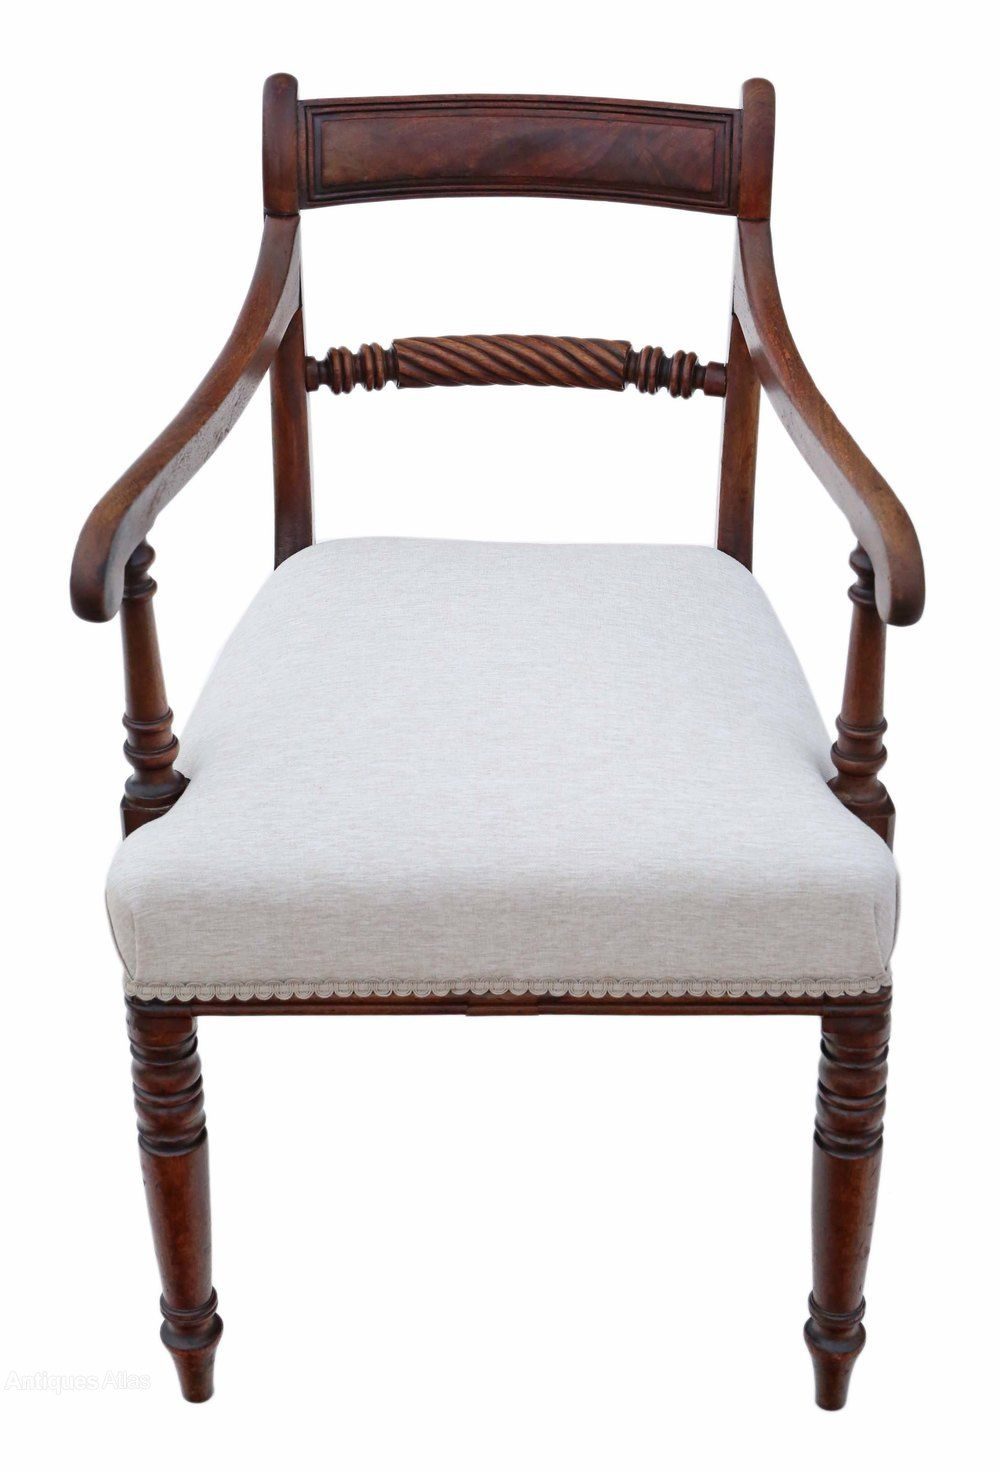 Brilliant Georgian C1810 Mahogany Office Elbow Desk Chair In 2019 Machost Co Dining Chair Design Ideas Machostcouk